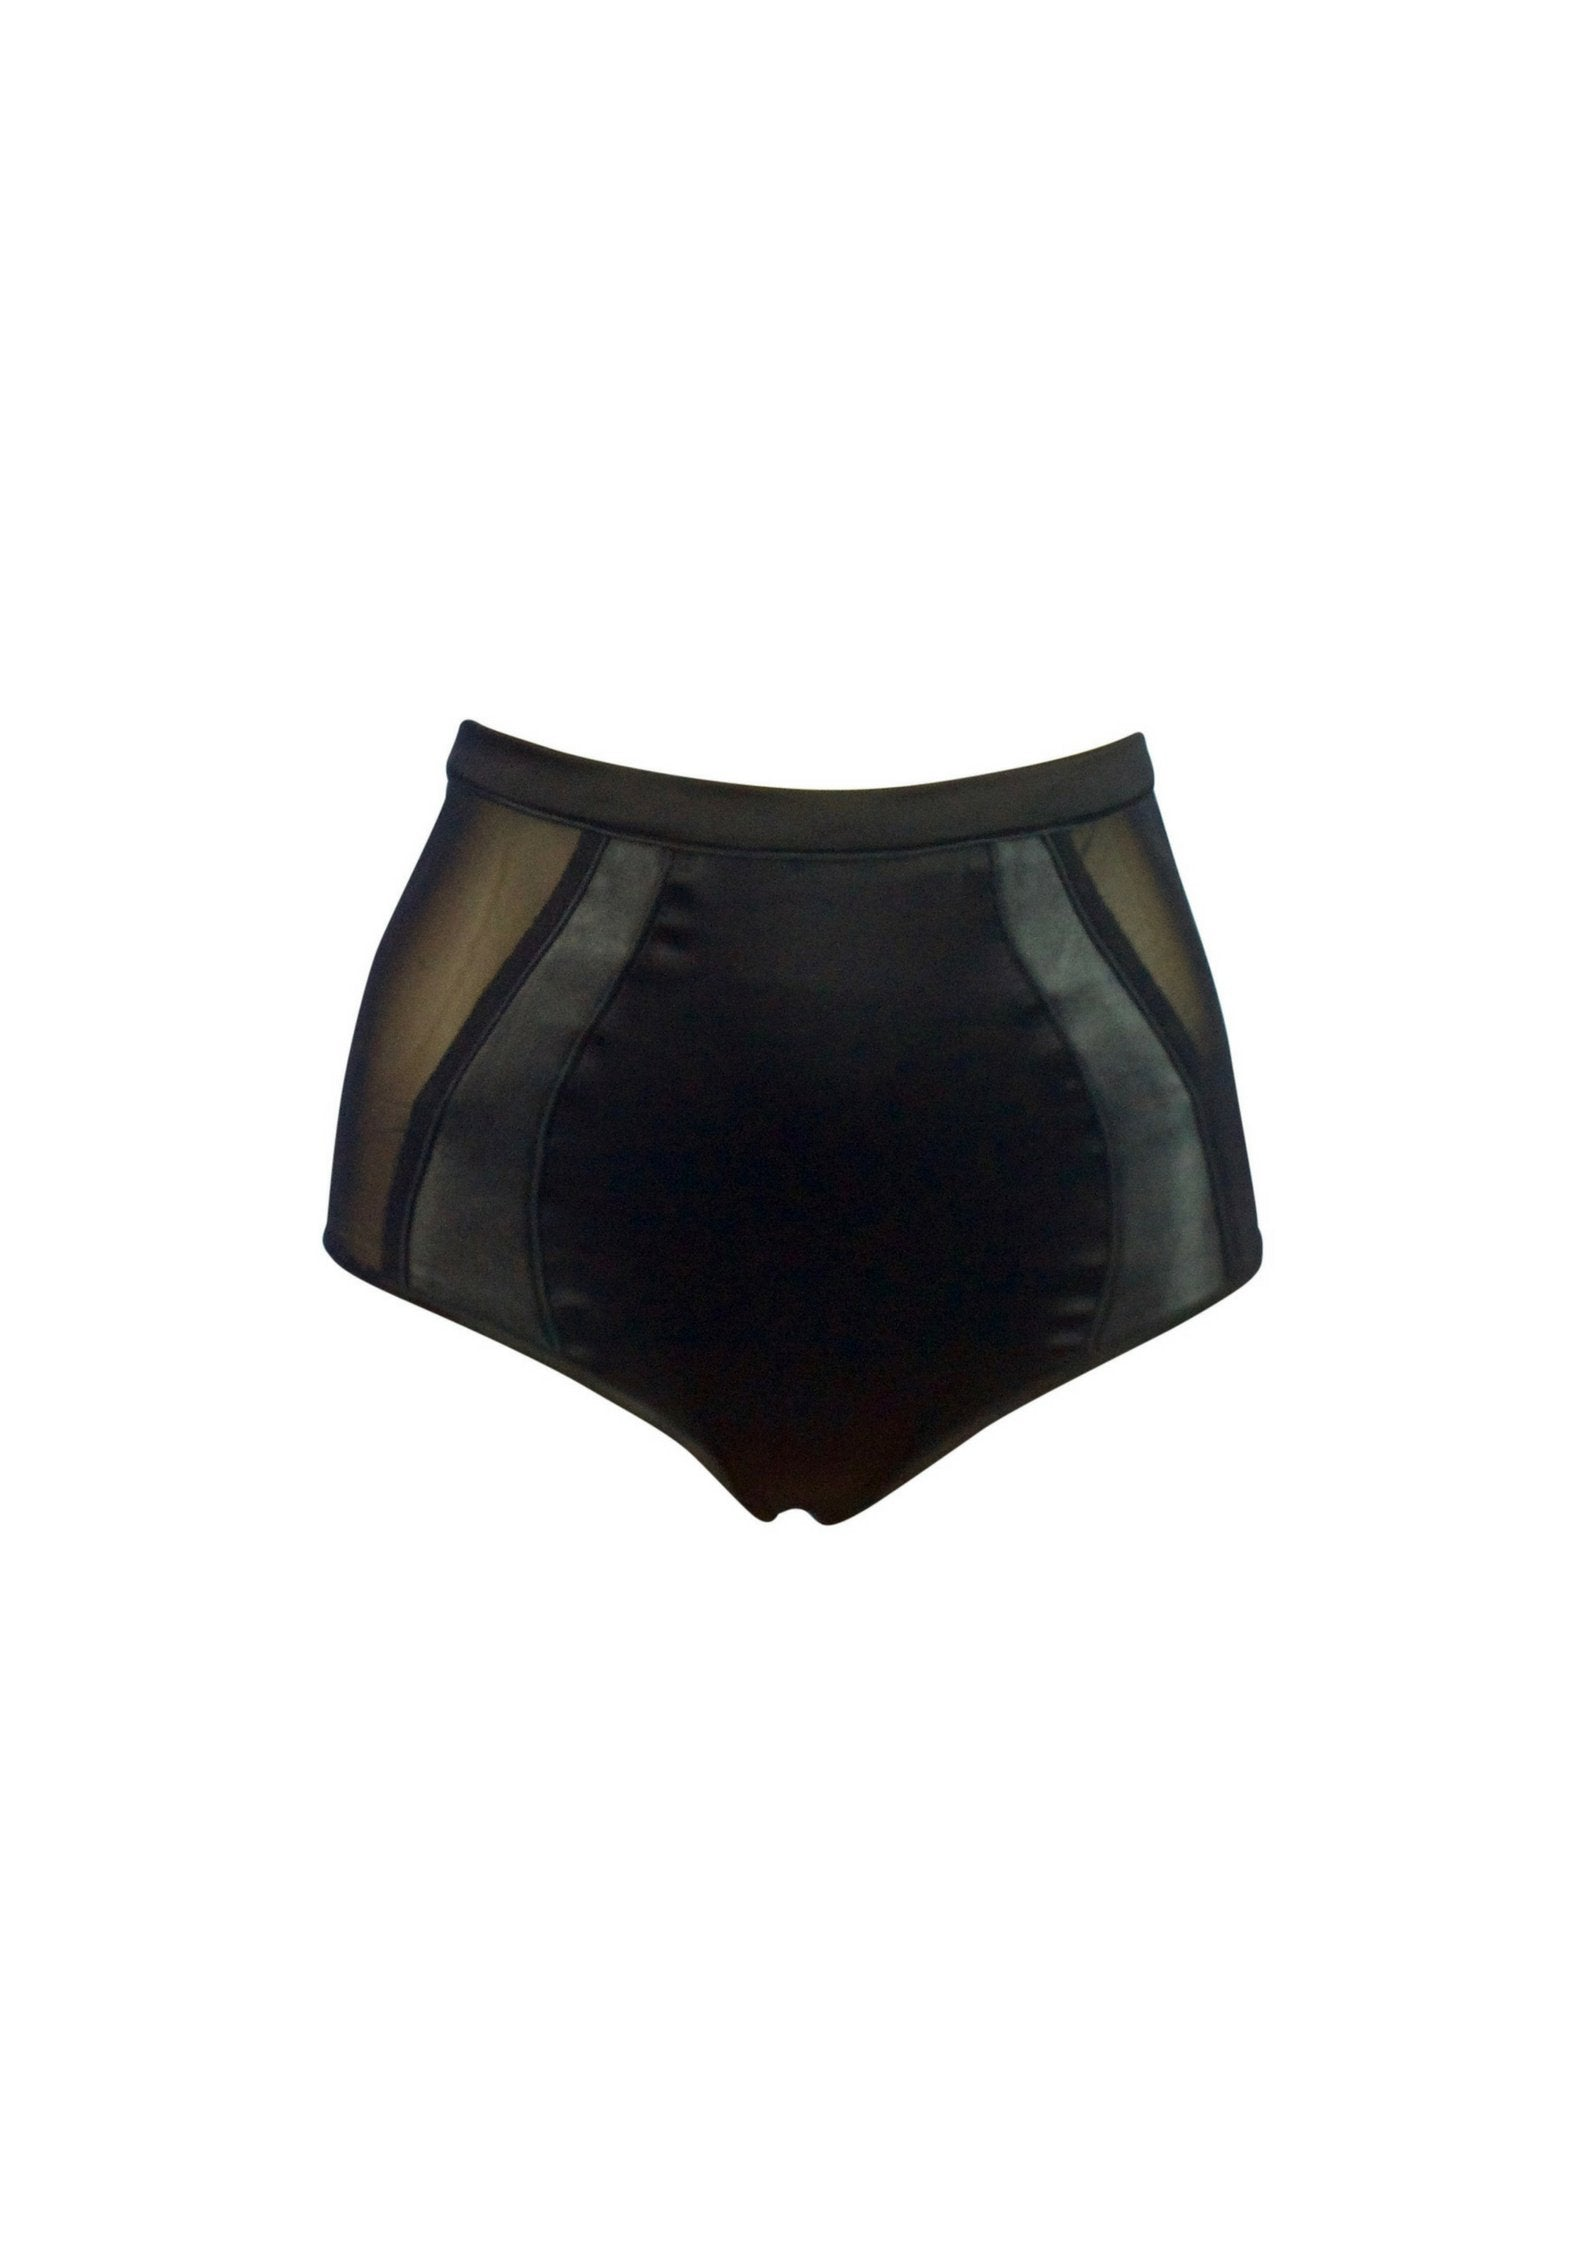 Lola 'n' Leather High waisted knickers - Available to pre-order now